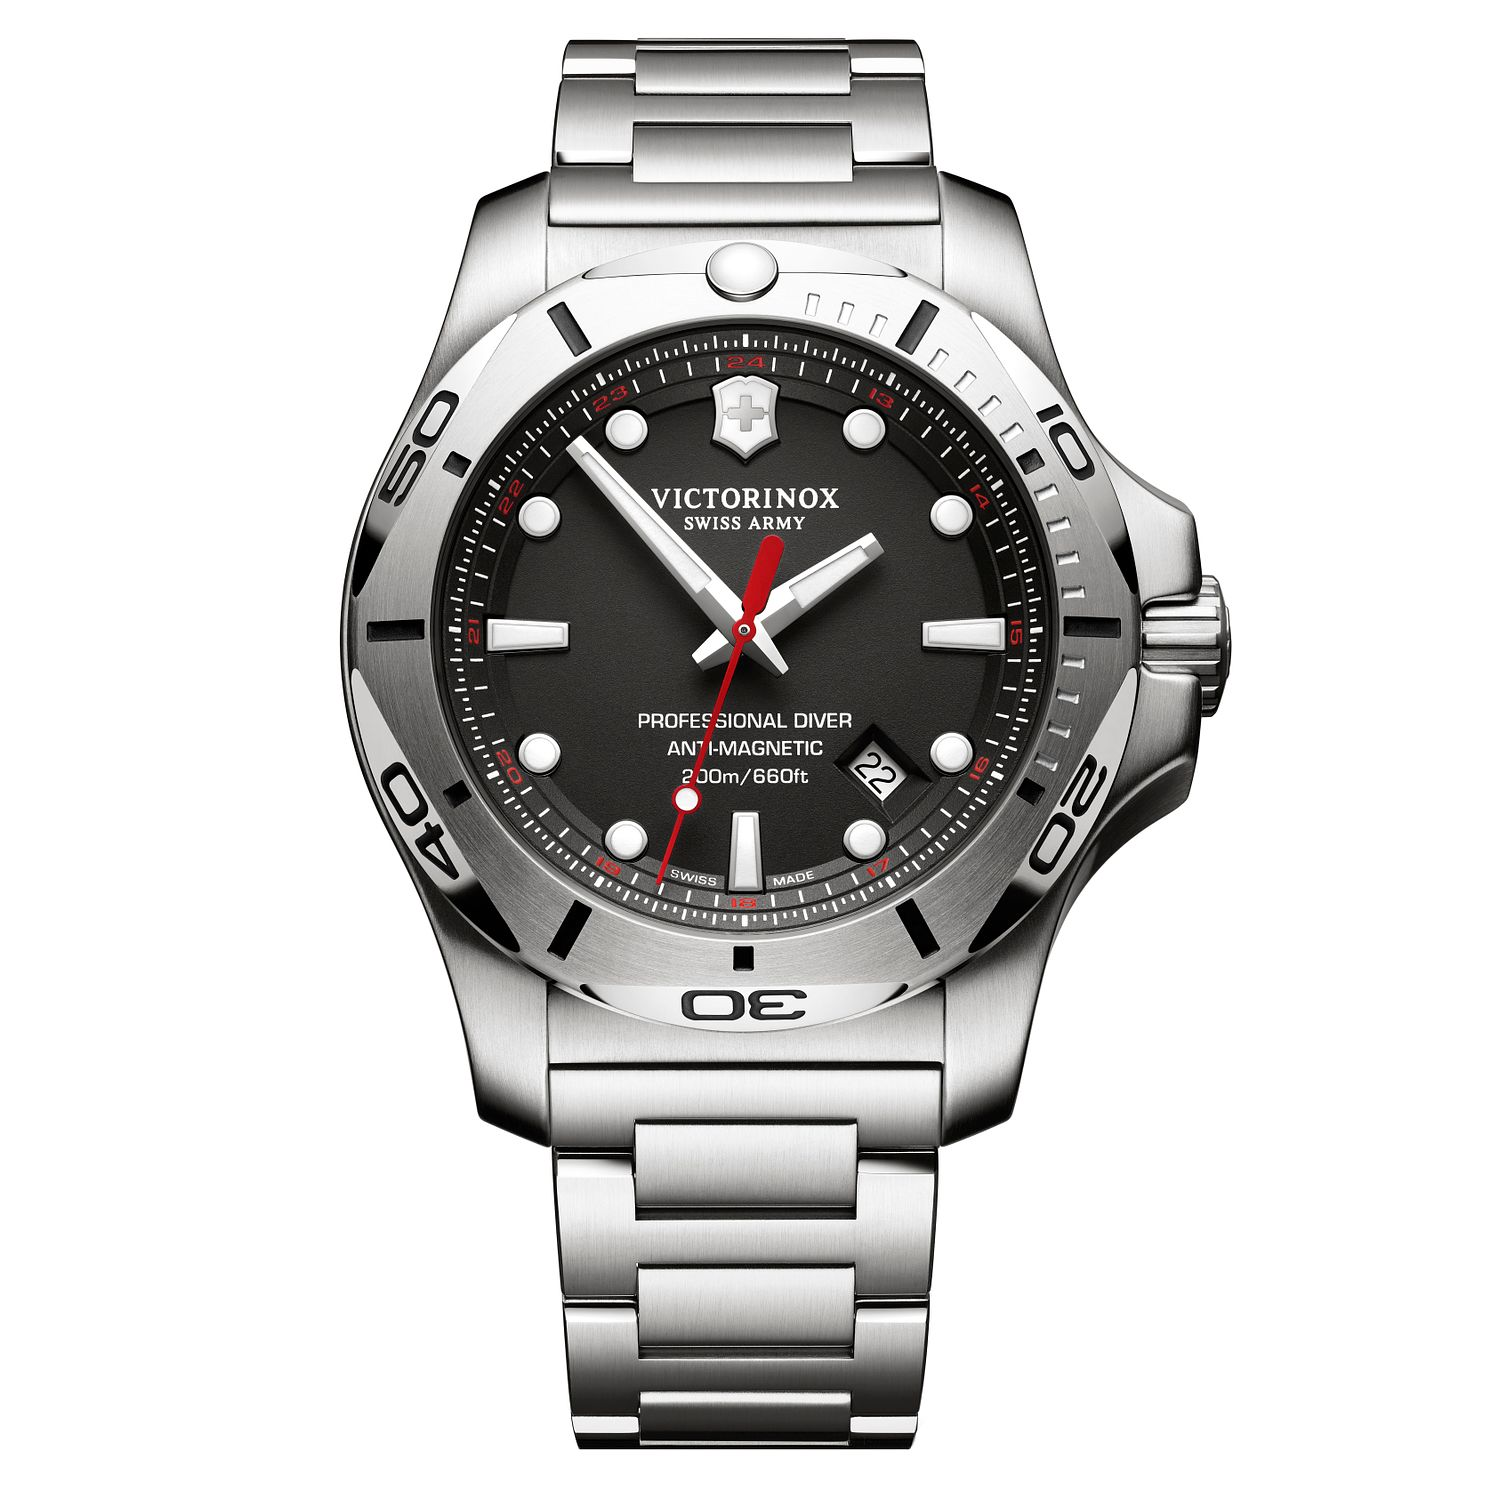 Victorinox Men's Professional Diver Steel Bracelet Watch - Product number 8044198